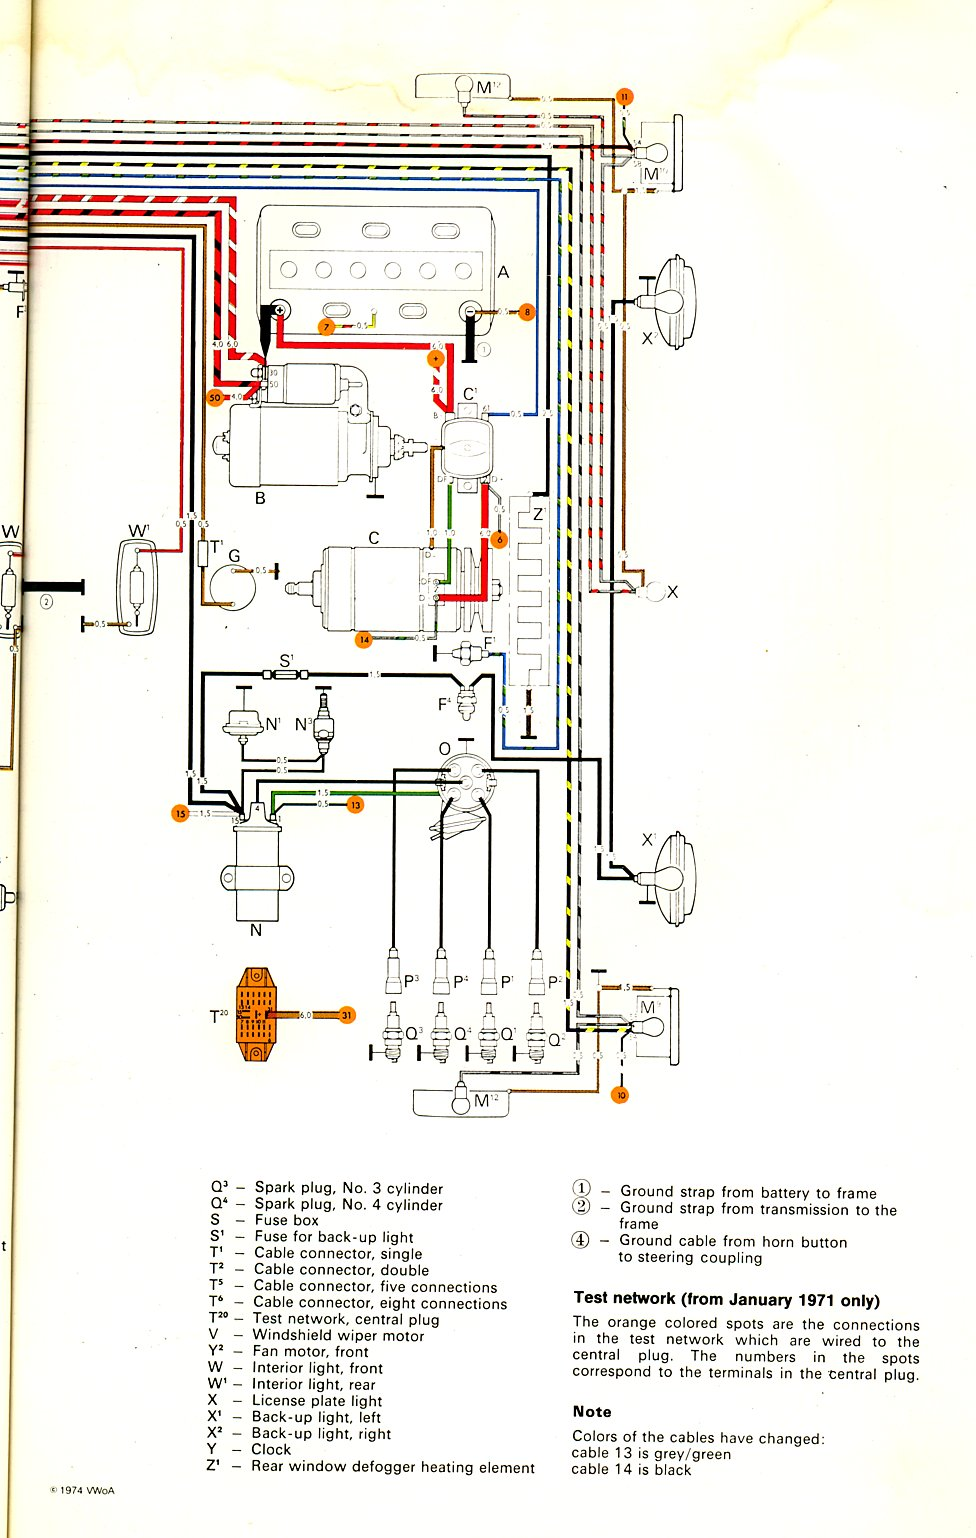 1968 vw type 1 wiring diagram 25 hp johnson outboard parts 1971 bus | thegoldenbug.com